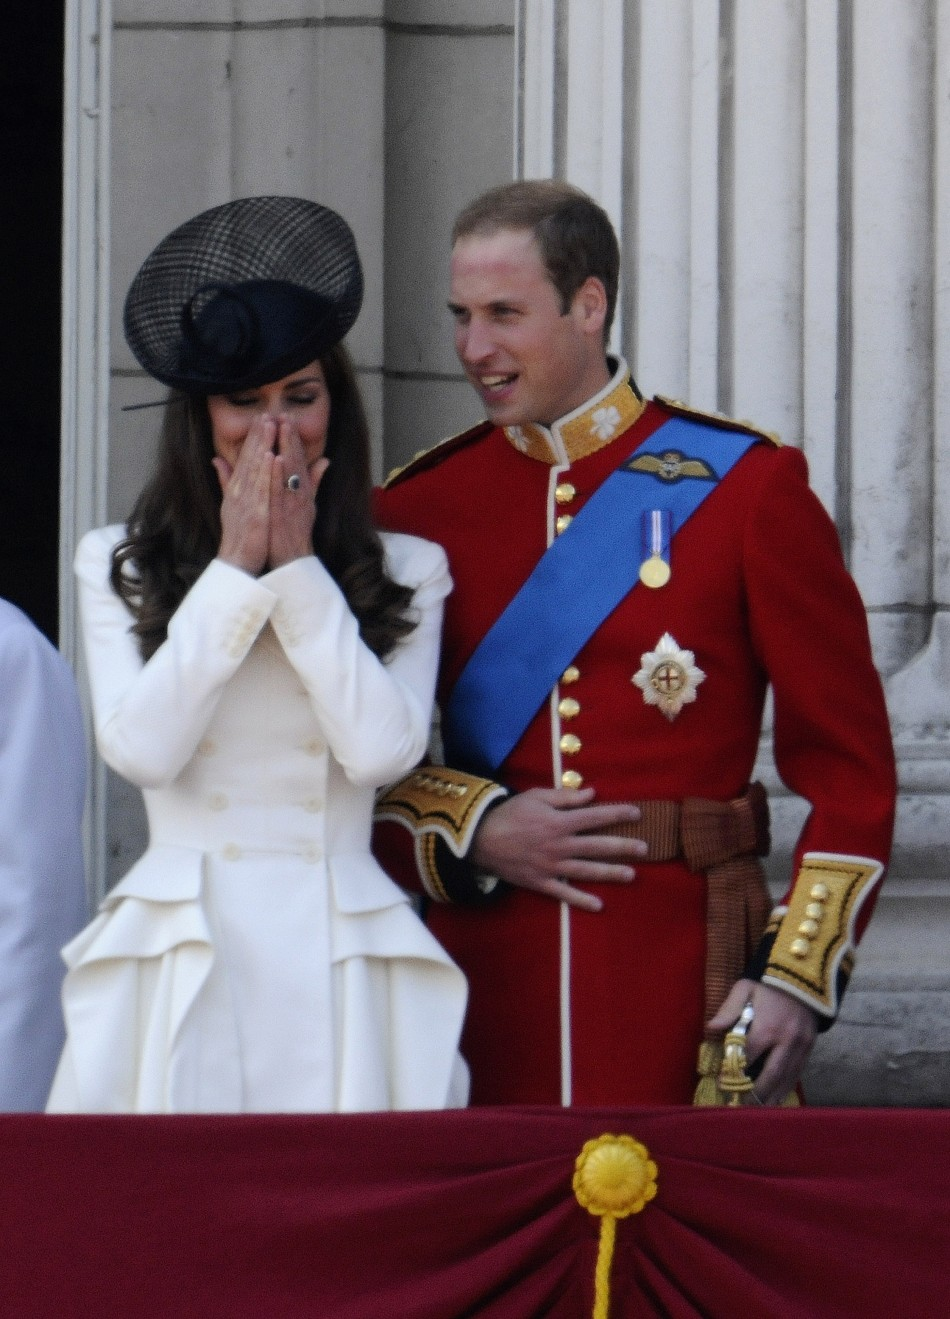 Britain039s Prince William and his wife Catherine, Duchess of Cambridge, share a light moment on the balcony of Buckingham Palace after attending the Trooping the Colour ceremony in central London